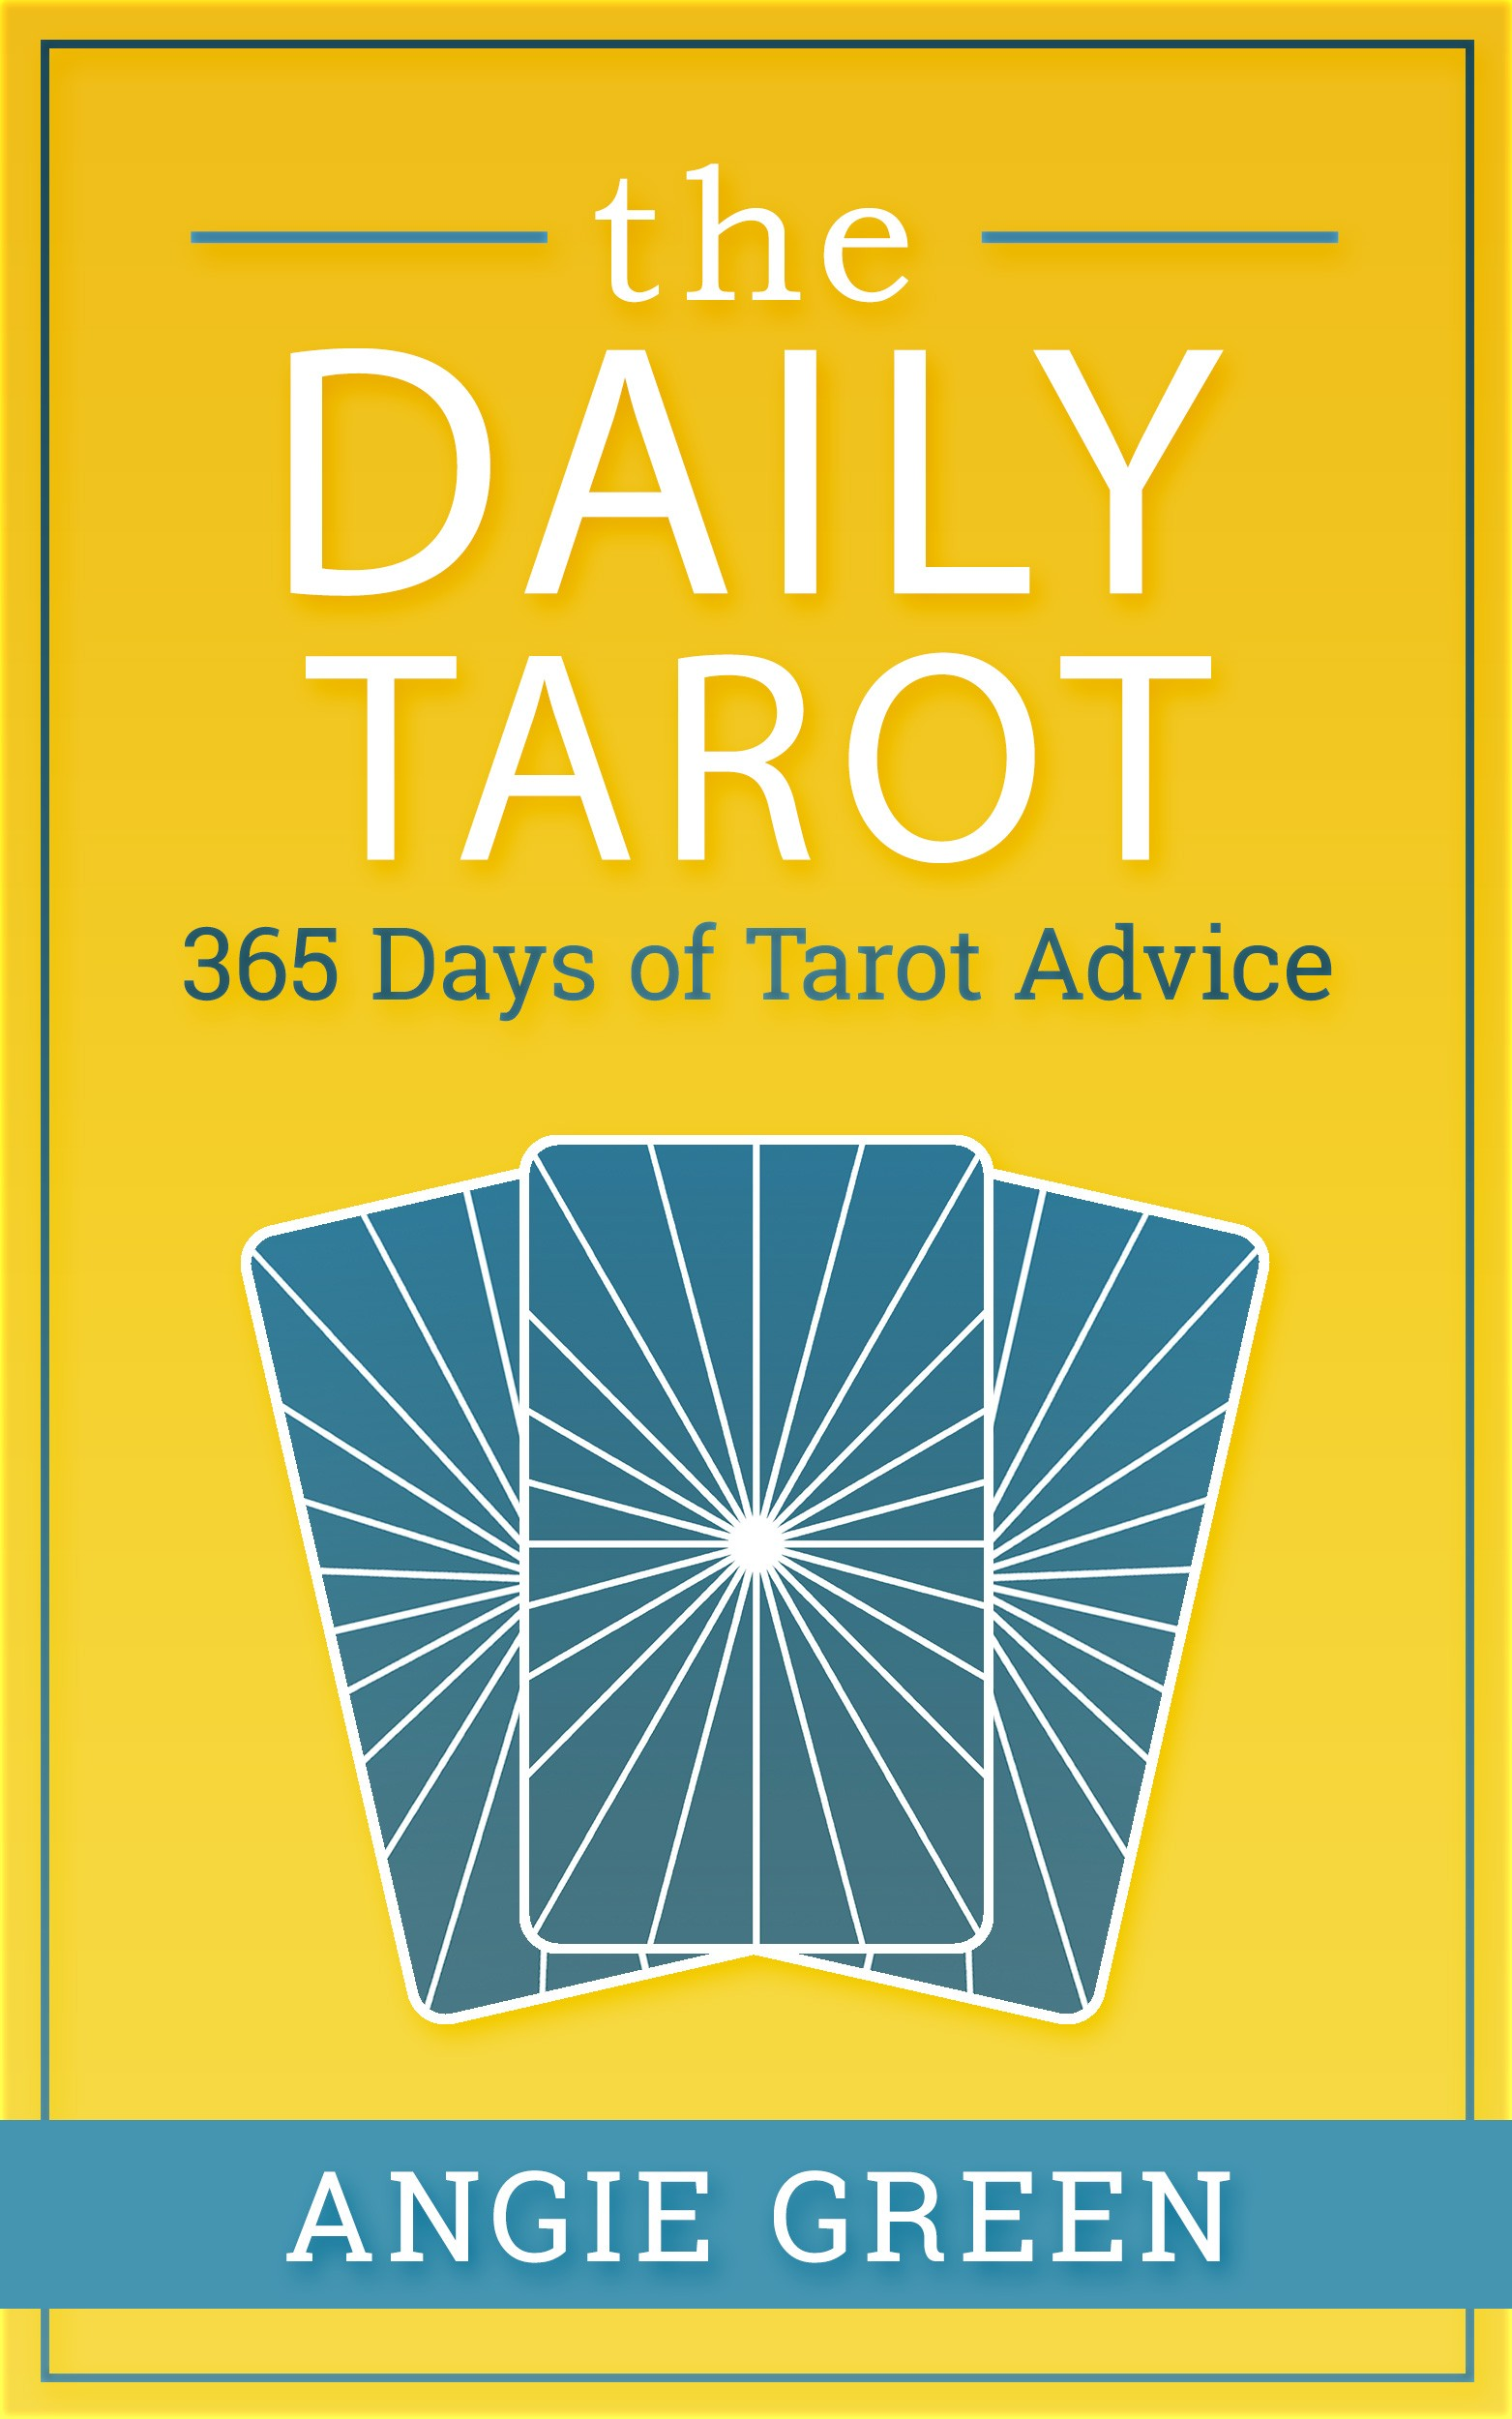 Discover creative, simple, and clear guidance from your tarot cards, every single day with The Daily Tarot Kit from The Simple Tarot. The Kit includes a print book, ebook, print journal, and daily tarot emailed horoscopes delivered every day for the next 365 days.